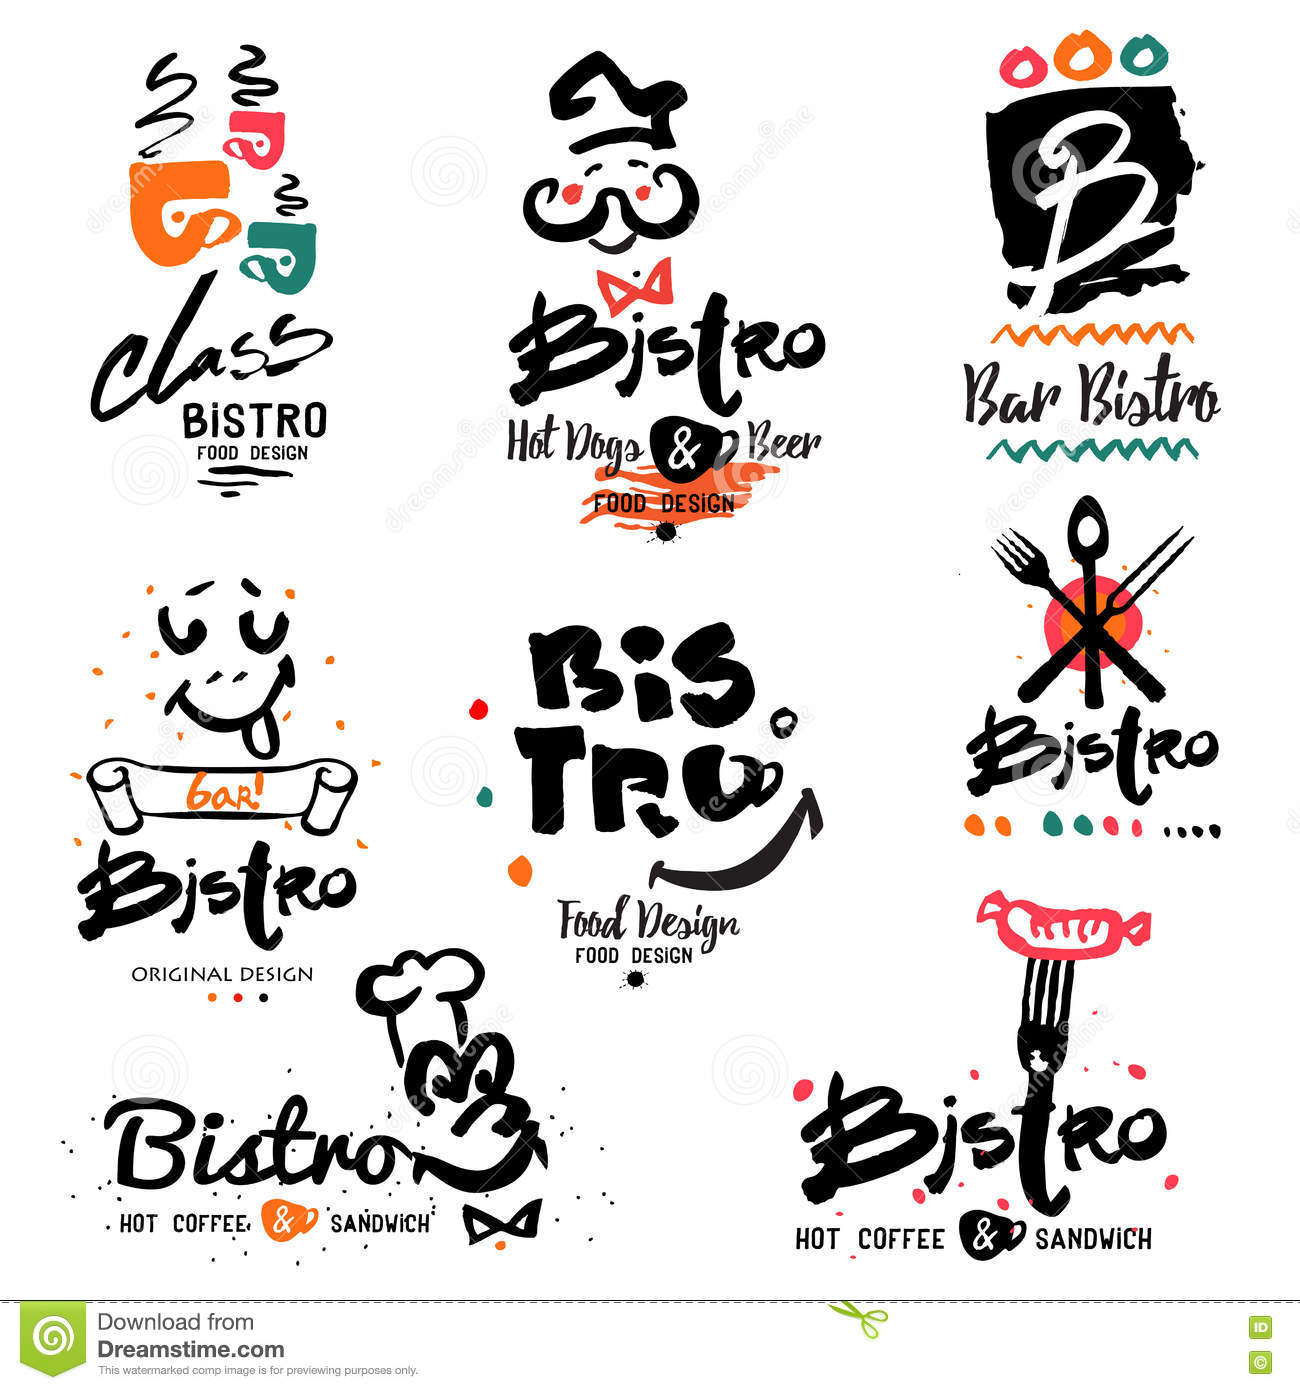 Bistro Logo Images And Design Elements Stock Vector Illustration